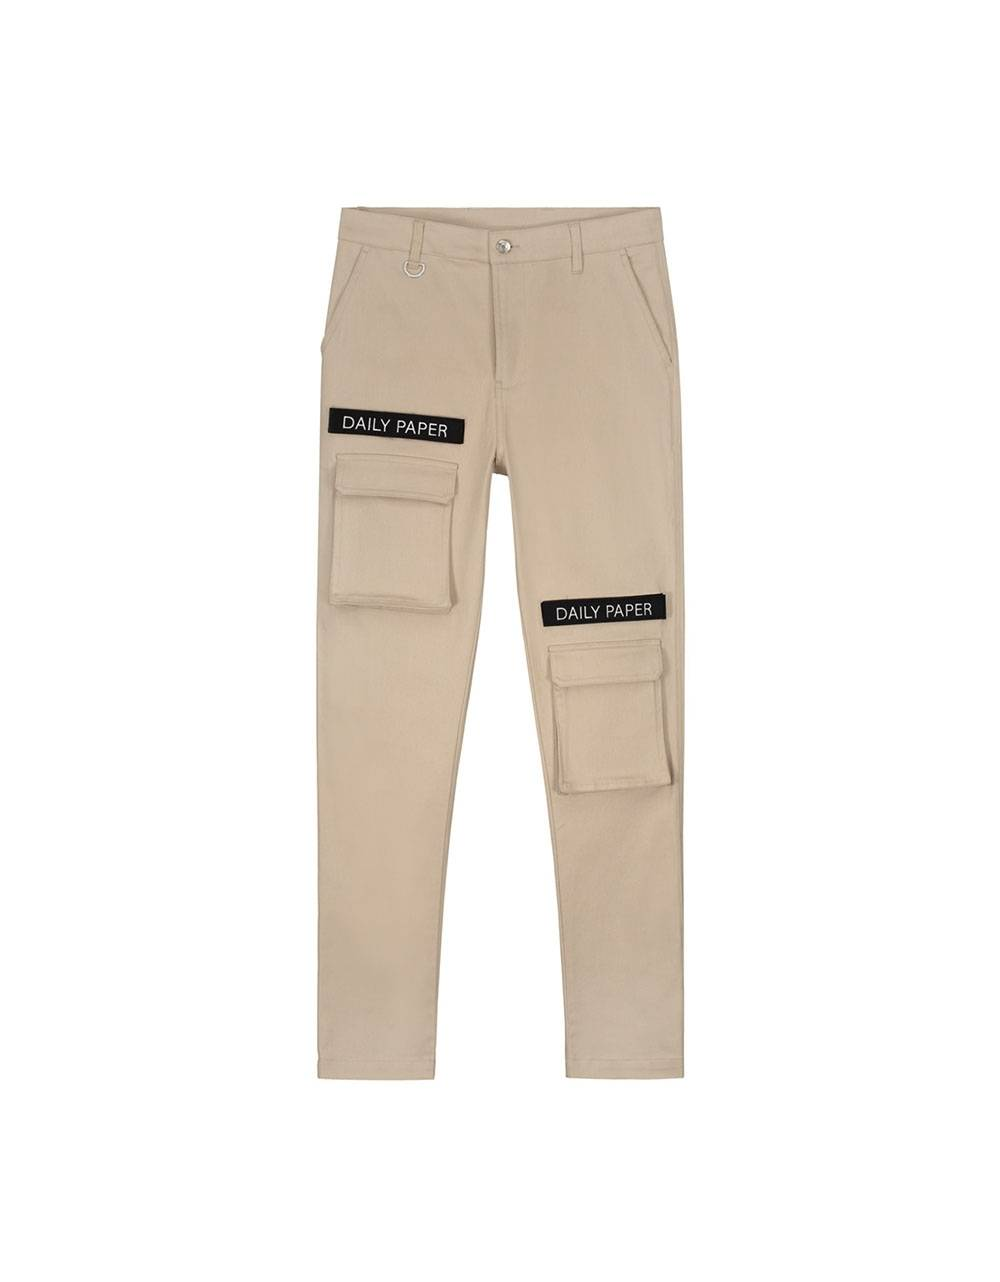 Daily Paper cargo pants - sand DAILY PAPER Pant 109,00 €